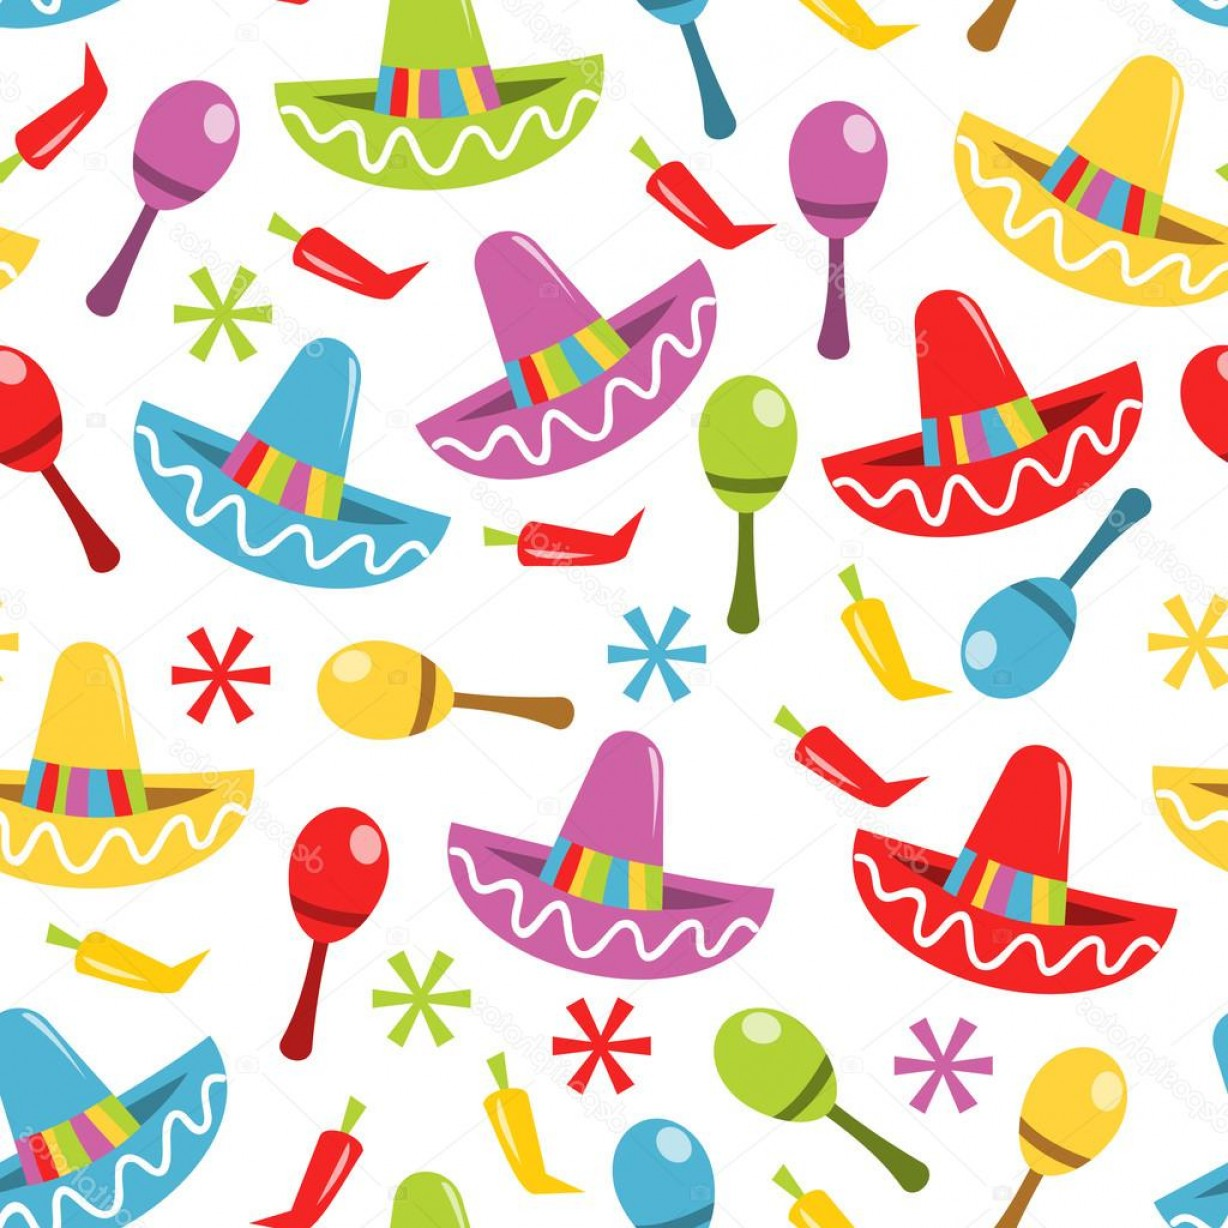 Fiesta Mexico Vector: Stock Illustration Mexican Fiesta Seamless Pattern Background